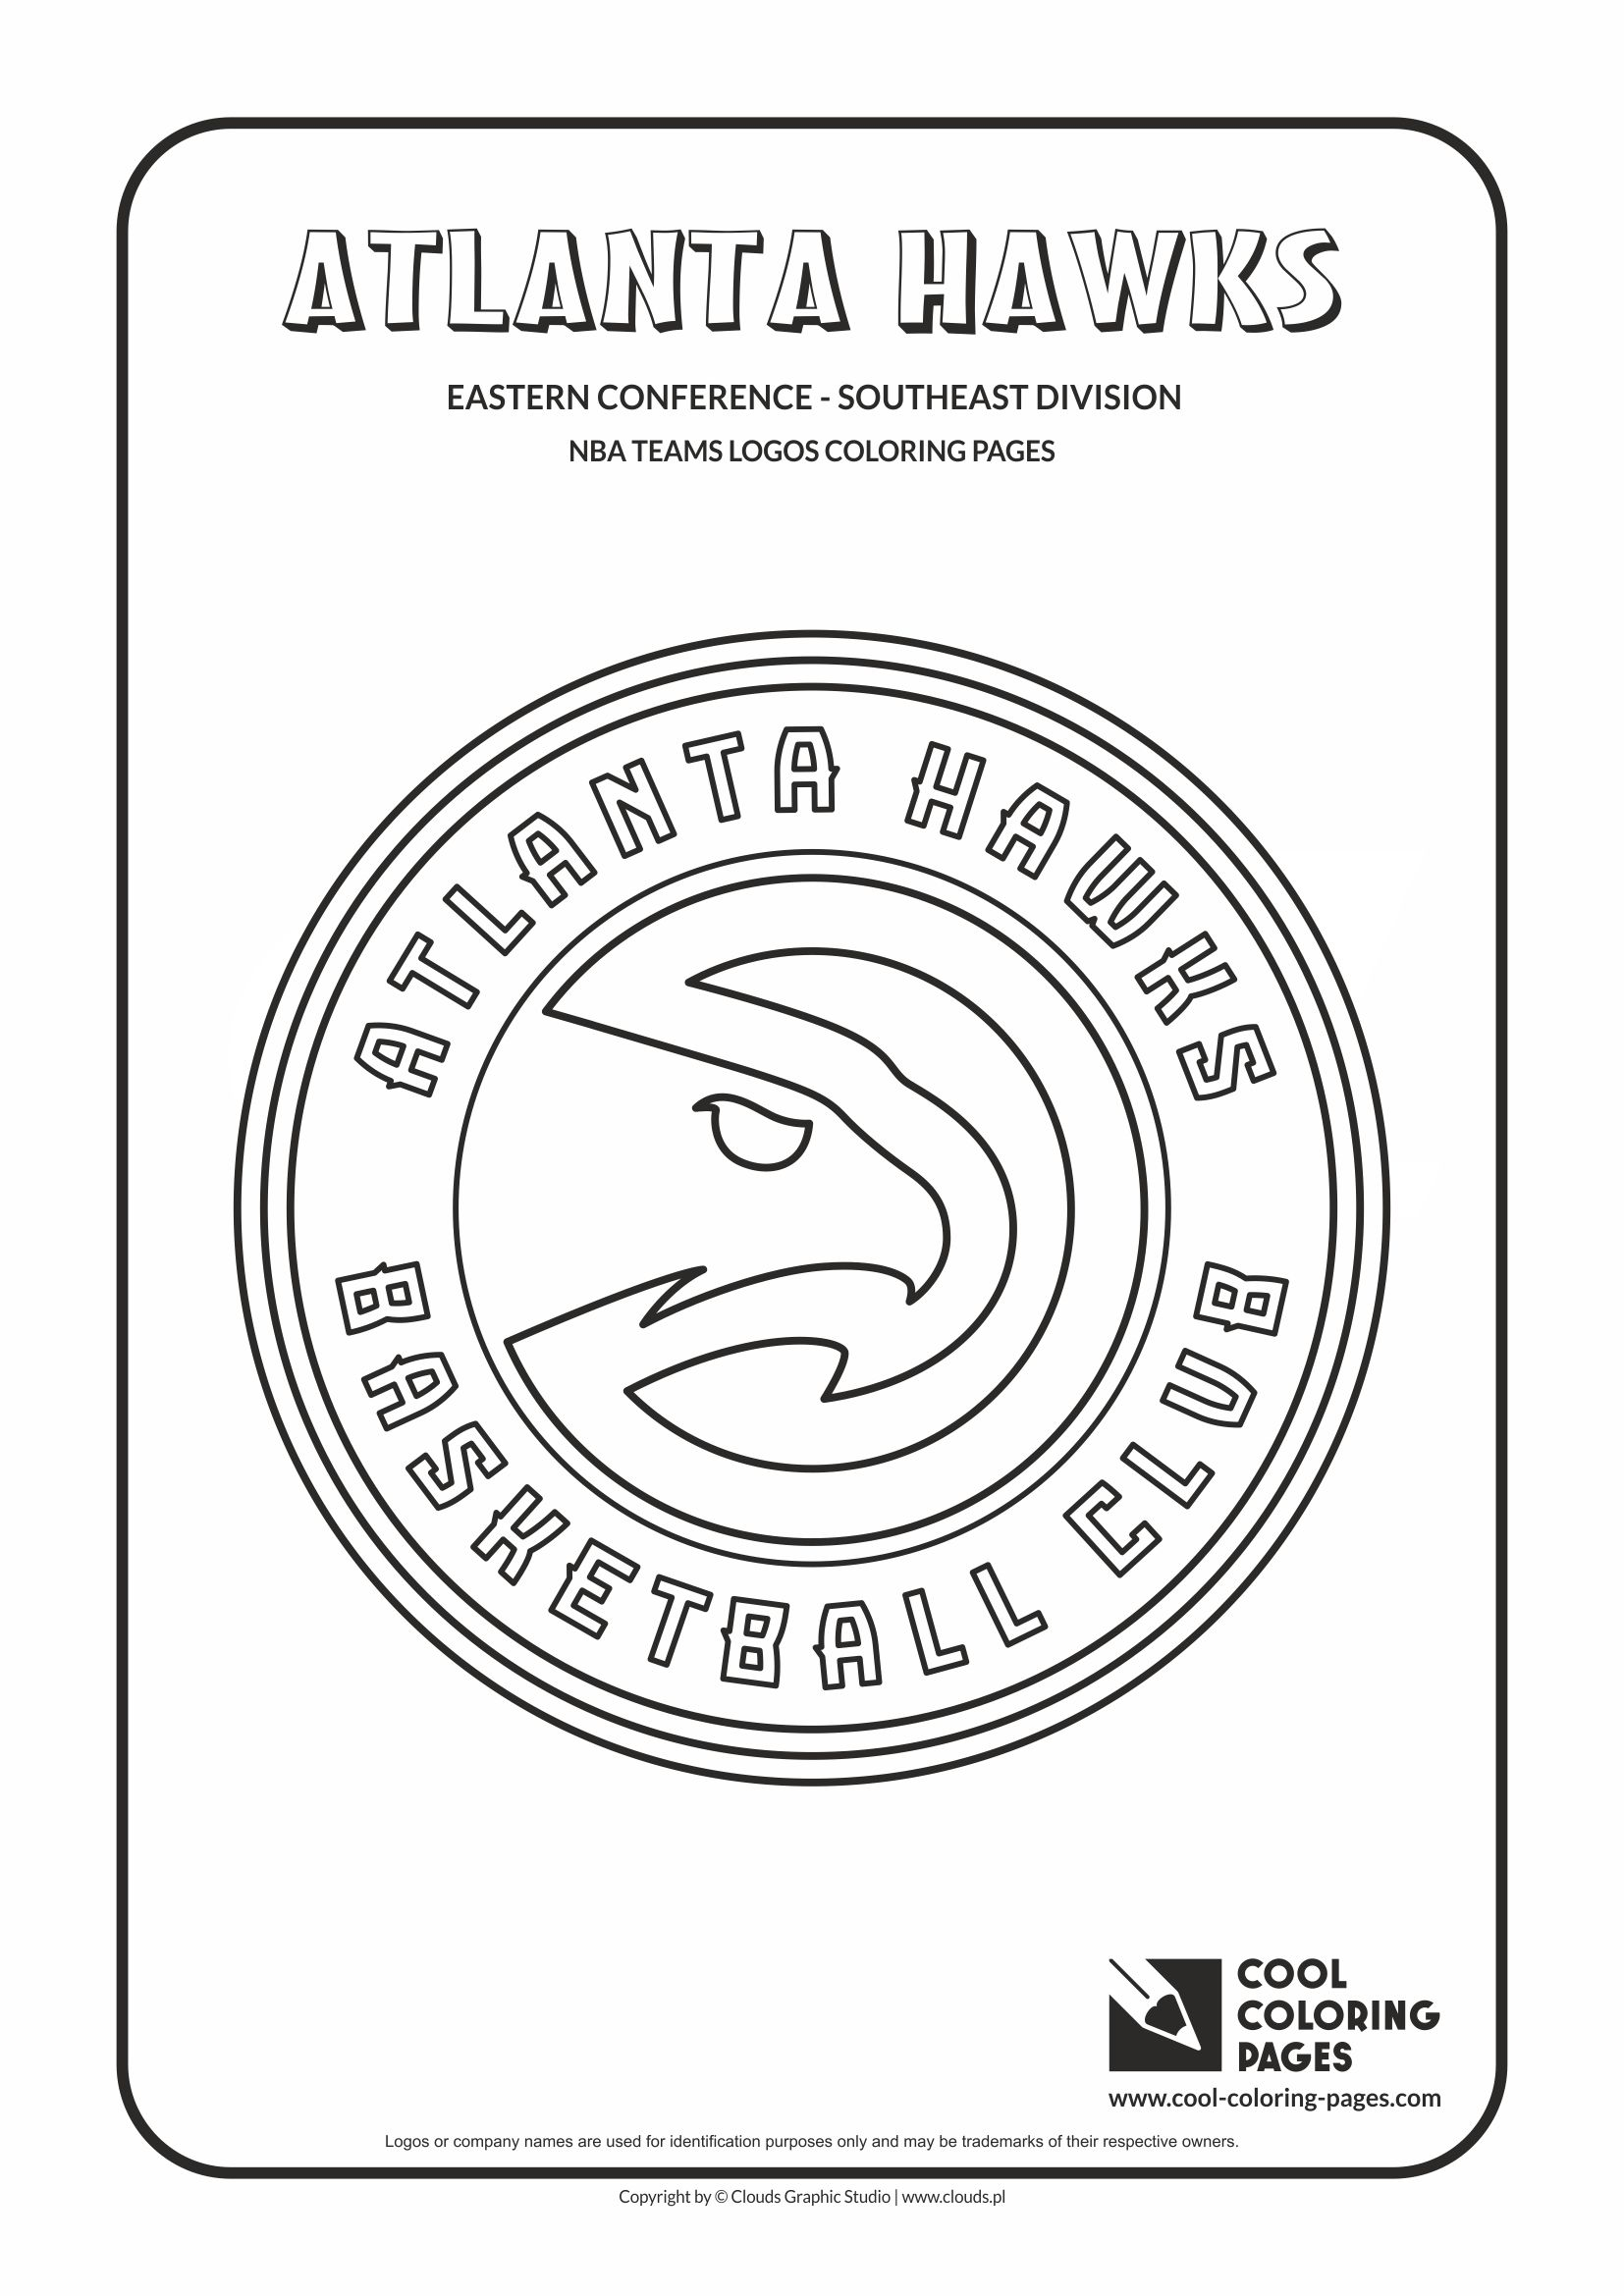 Cool Coloring Pages Atlanta Hawks Nba Basketball Teams